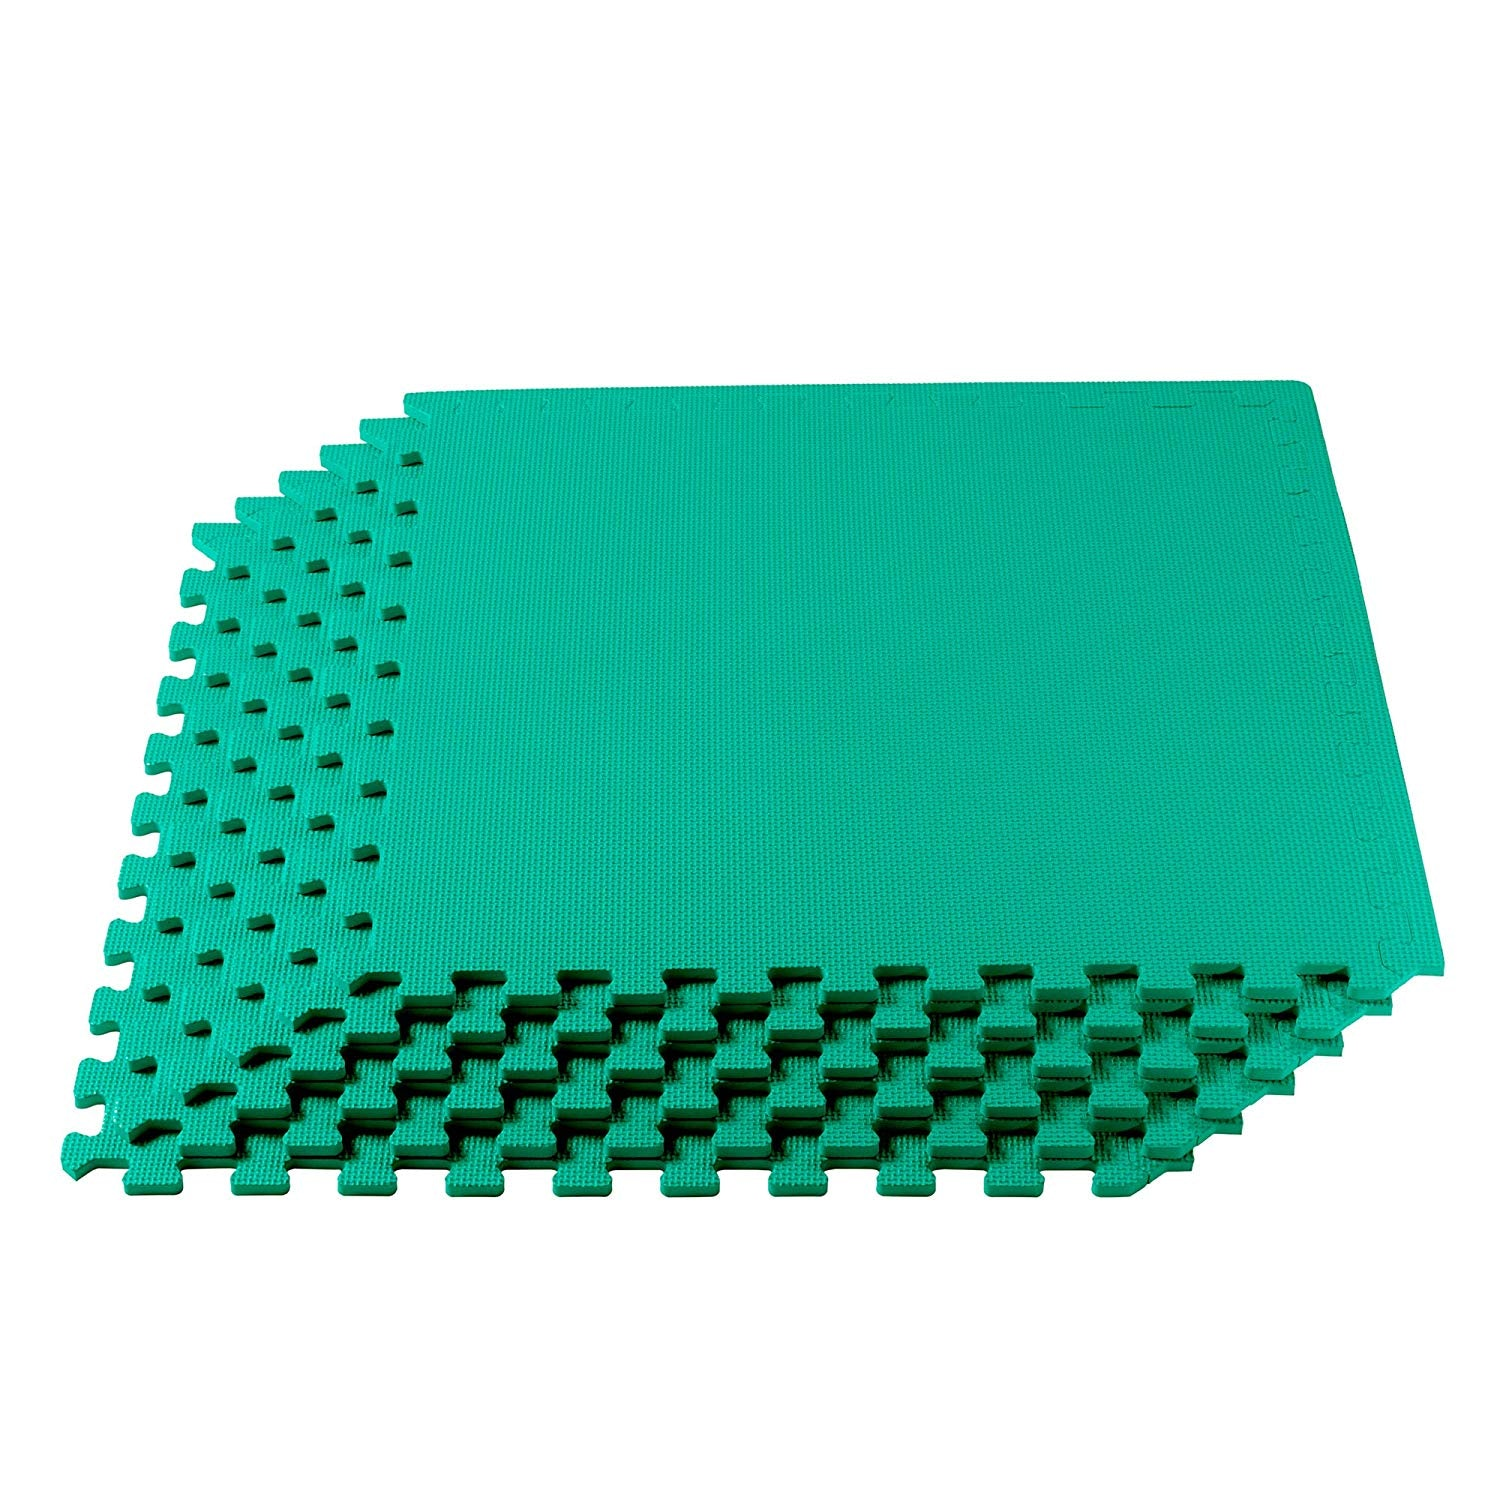 Body Sport Cross-Linked Foam Mat Perfect for low impact exercise and stretching